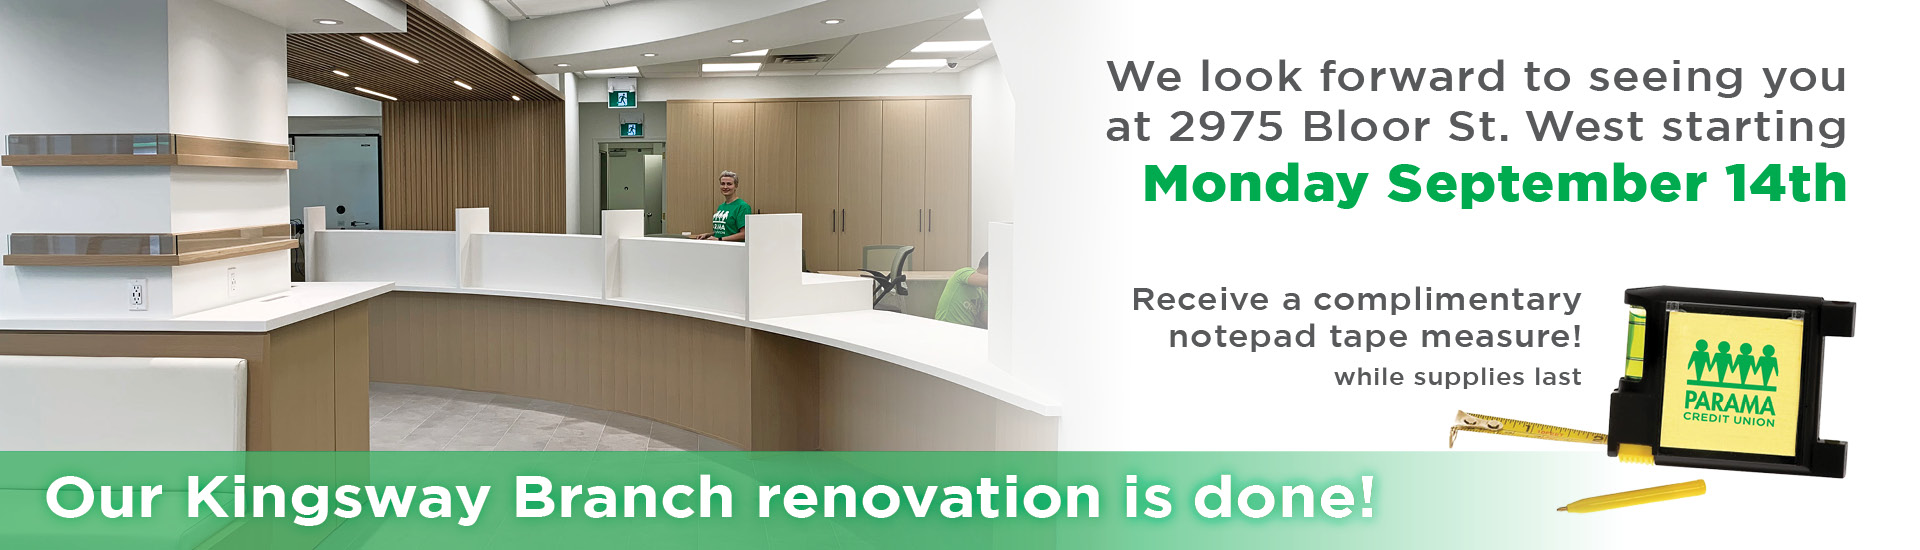 Our Kingsway branch renovation is done!